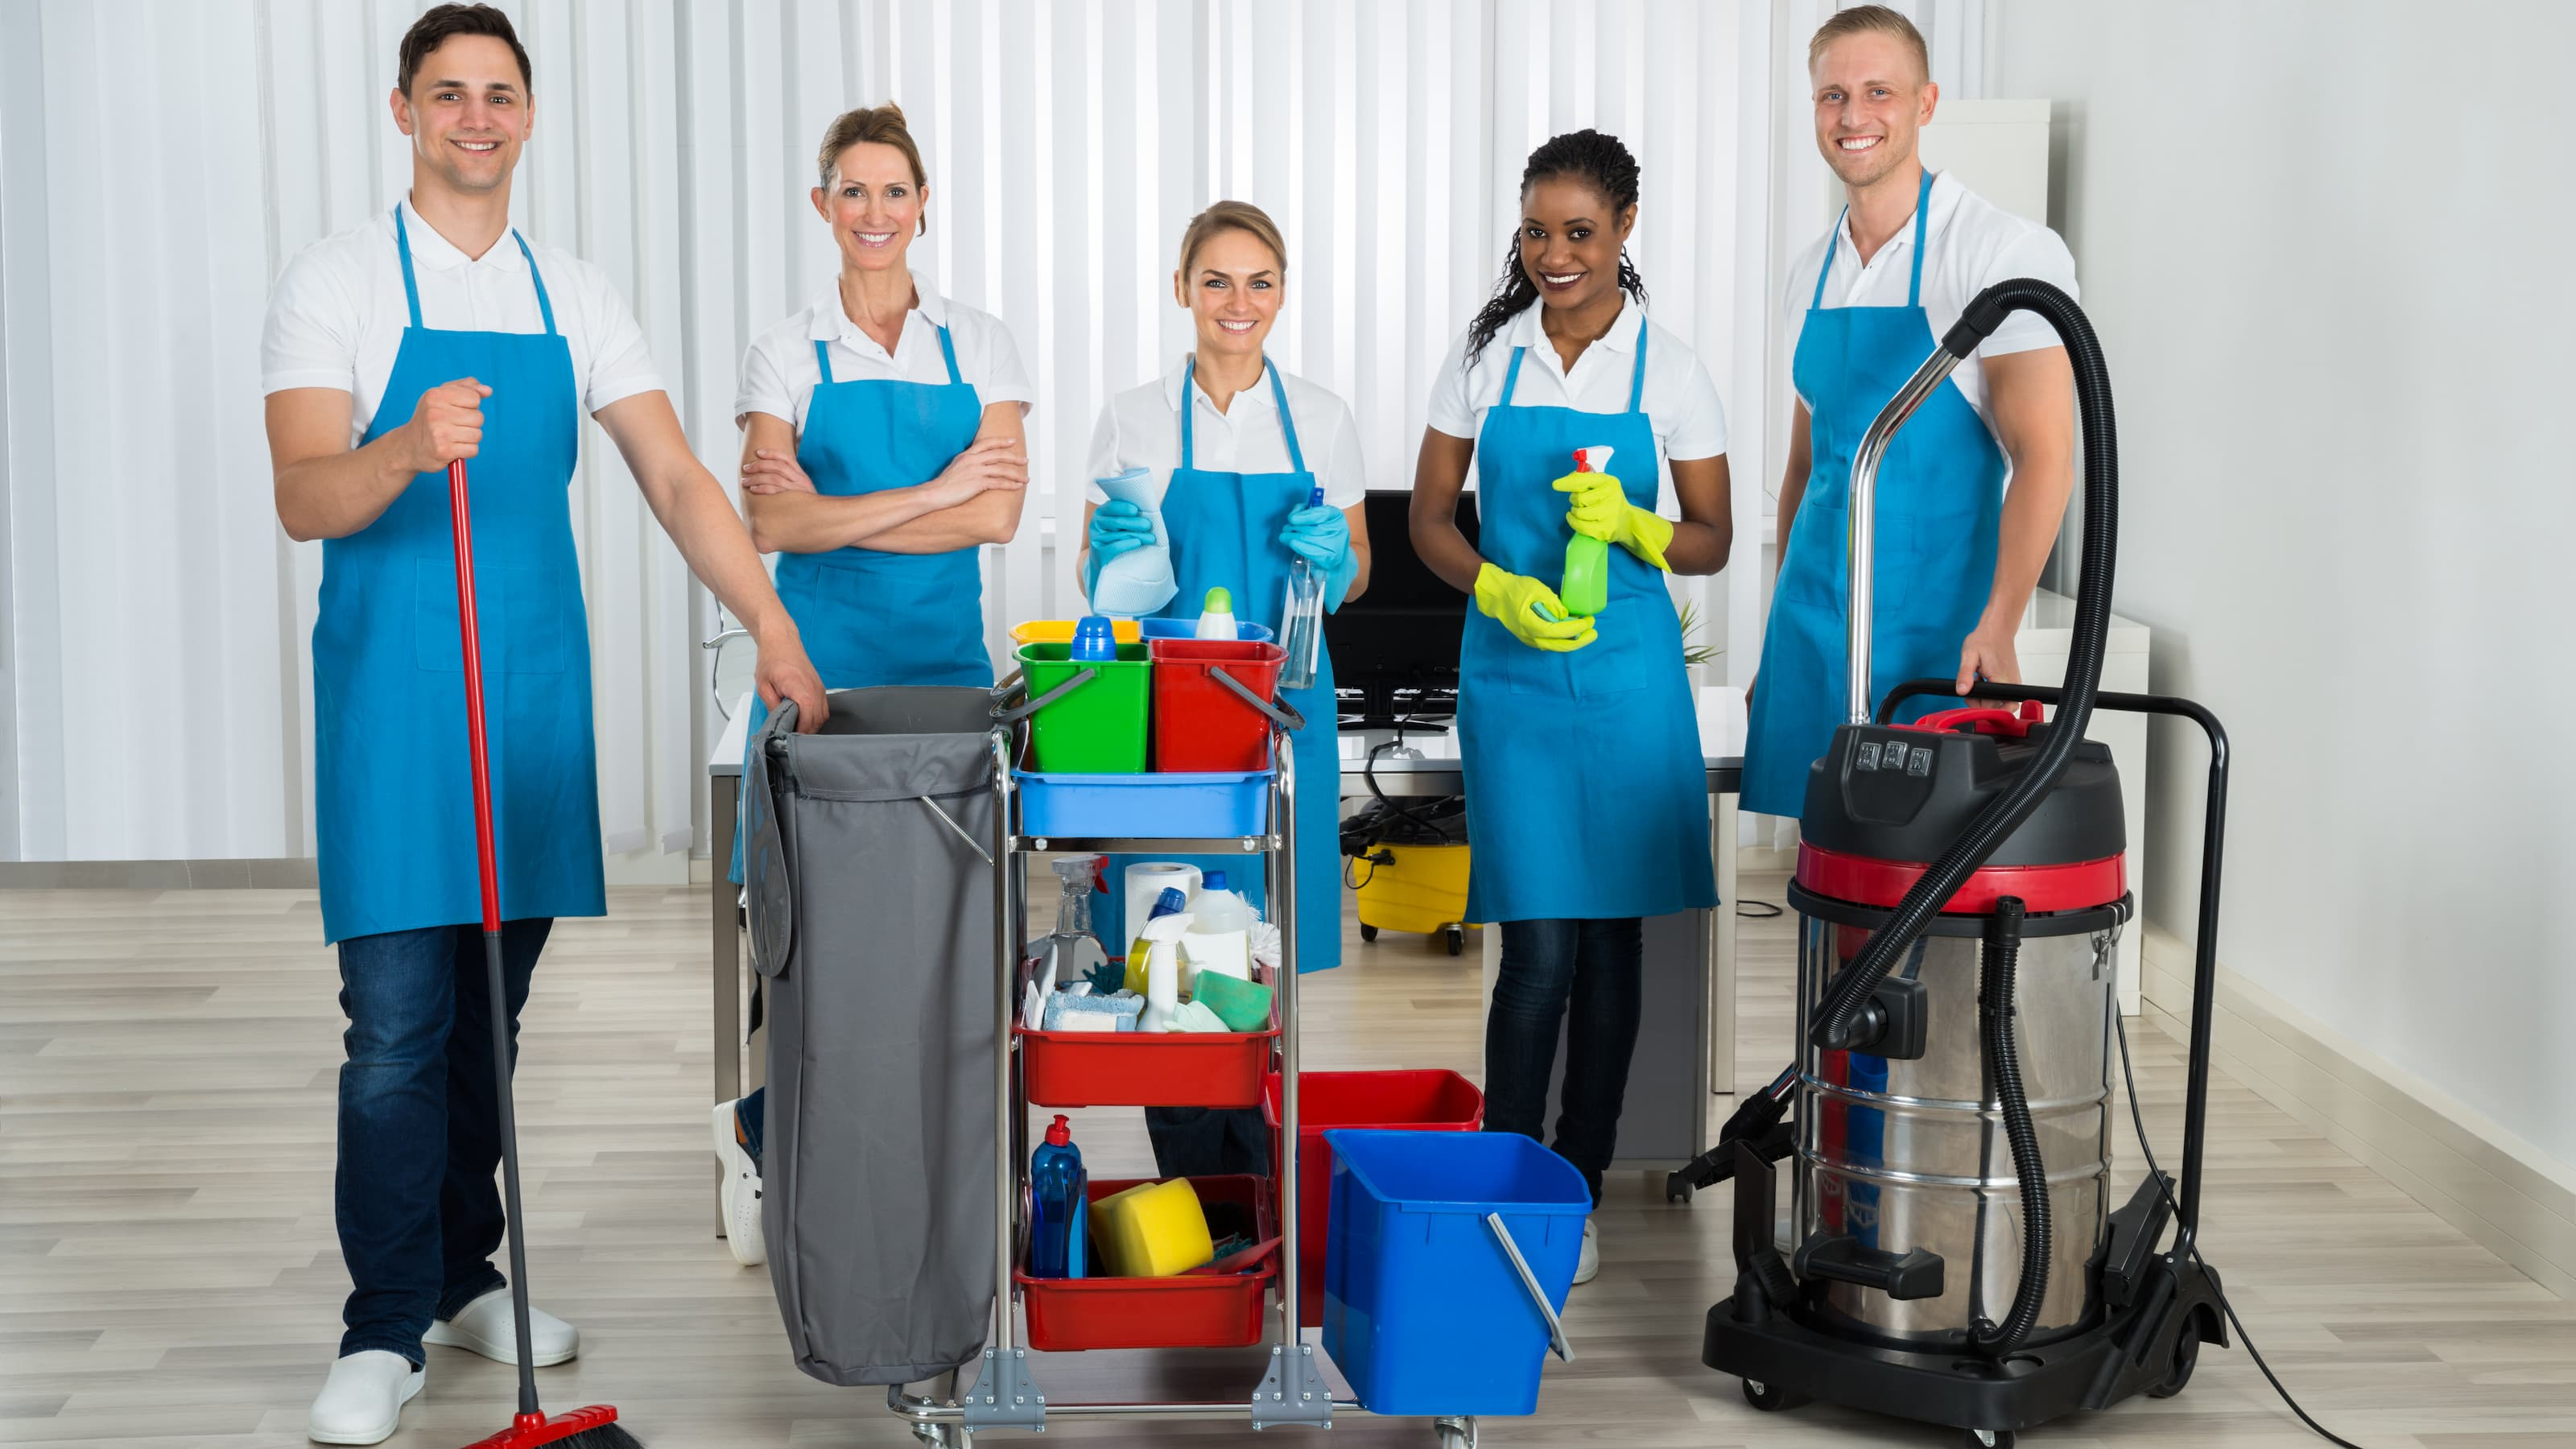 Professional Office Cleaners had just finished their first day of office cleaning.